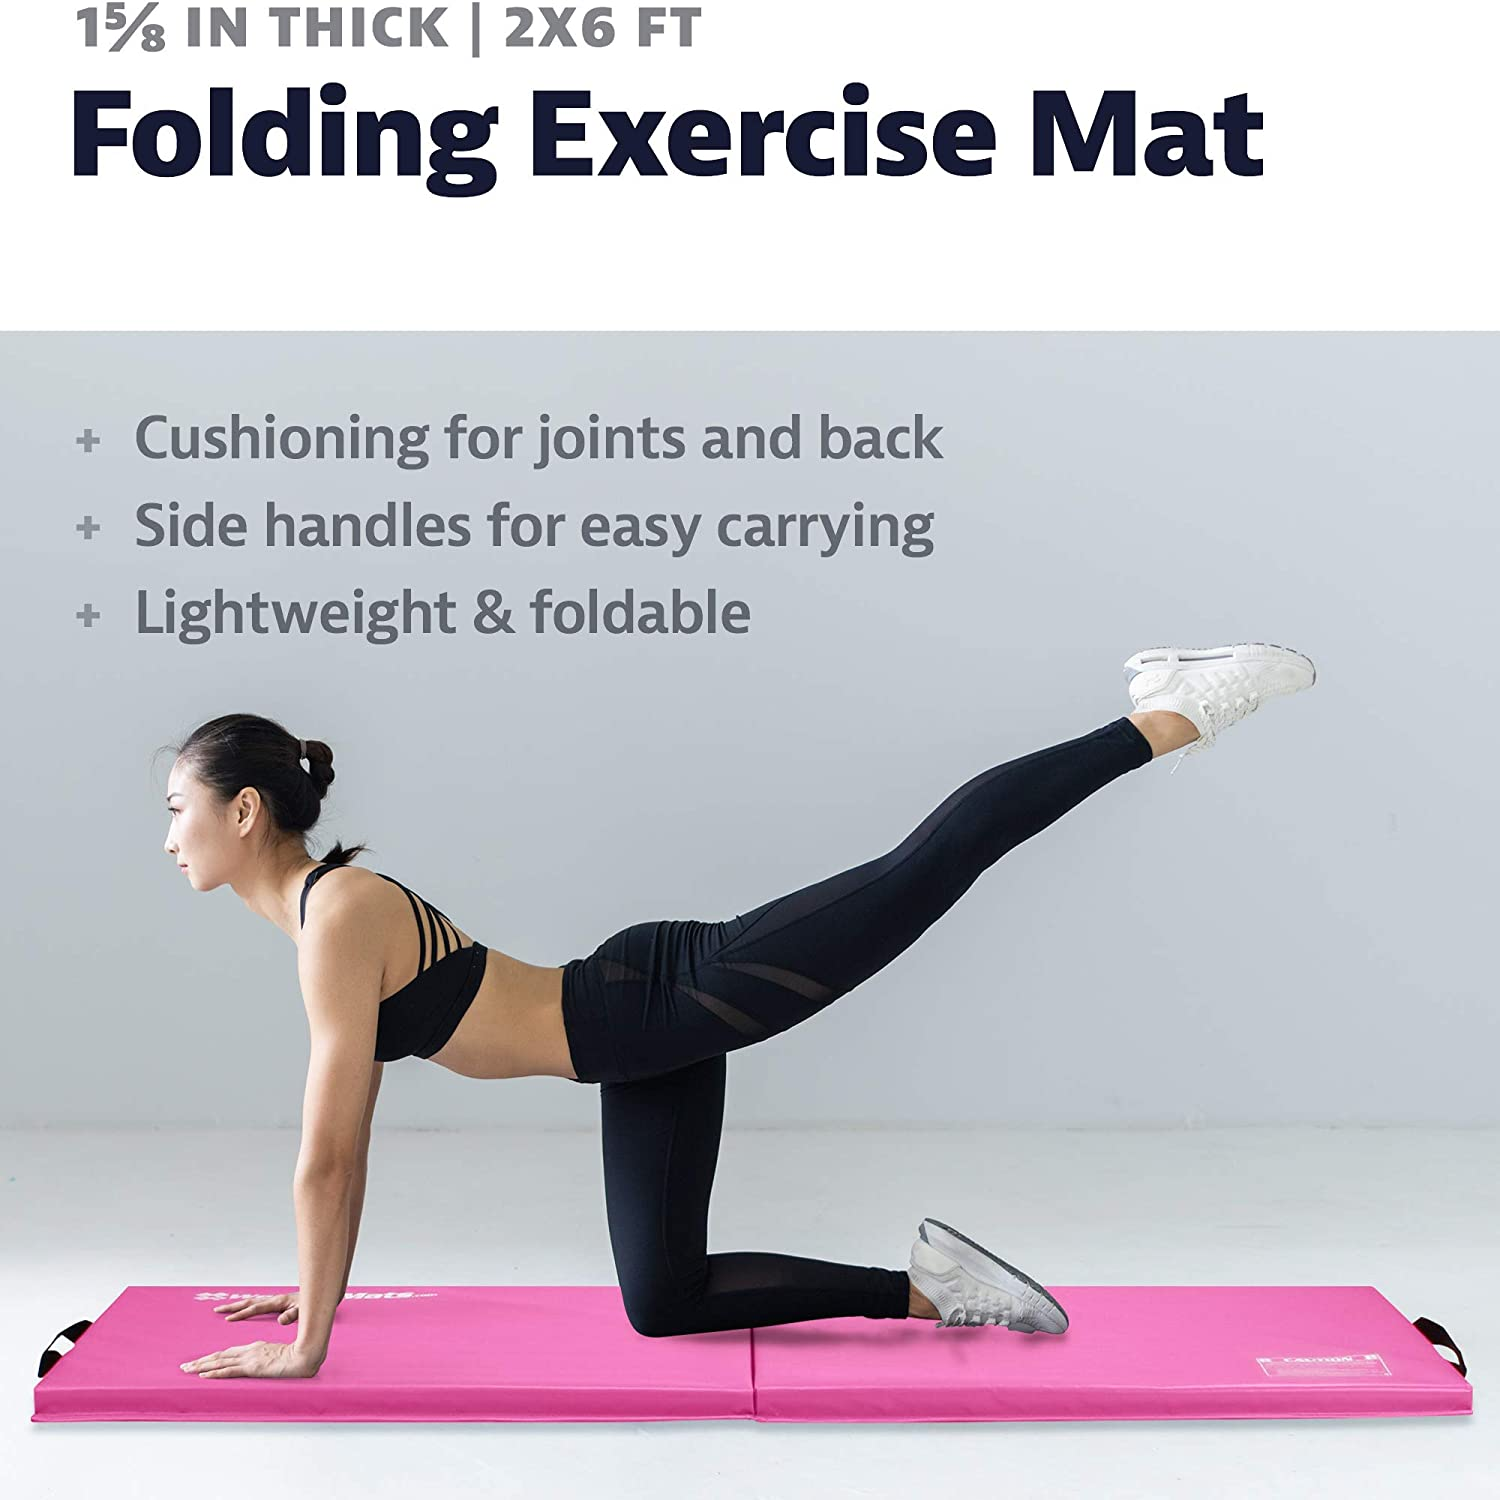 For Core Workouts Personal Fitness Gym Flooring MMA Gymnastics and Cheerleading Use We Sell Mats 2 ft x 6 ft x 1 5//8 in Personal Folding Exercise Mat